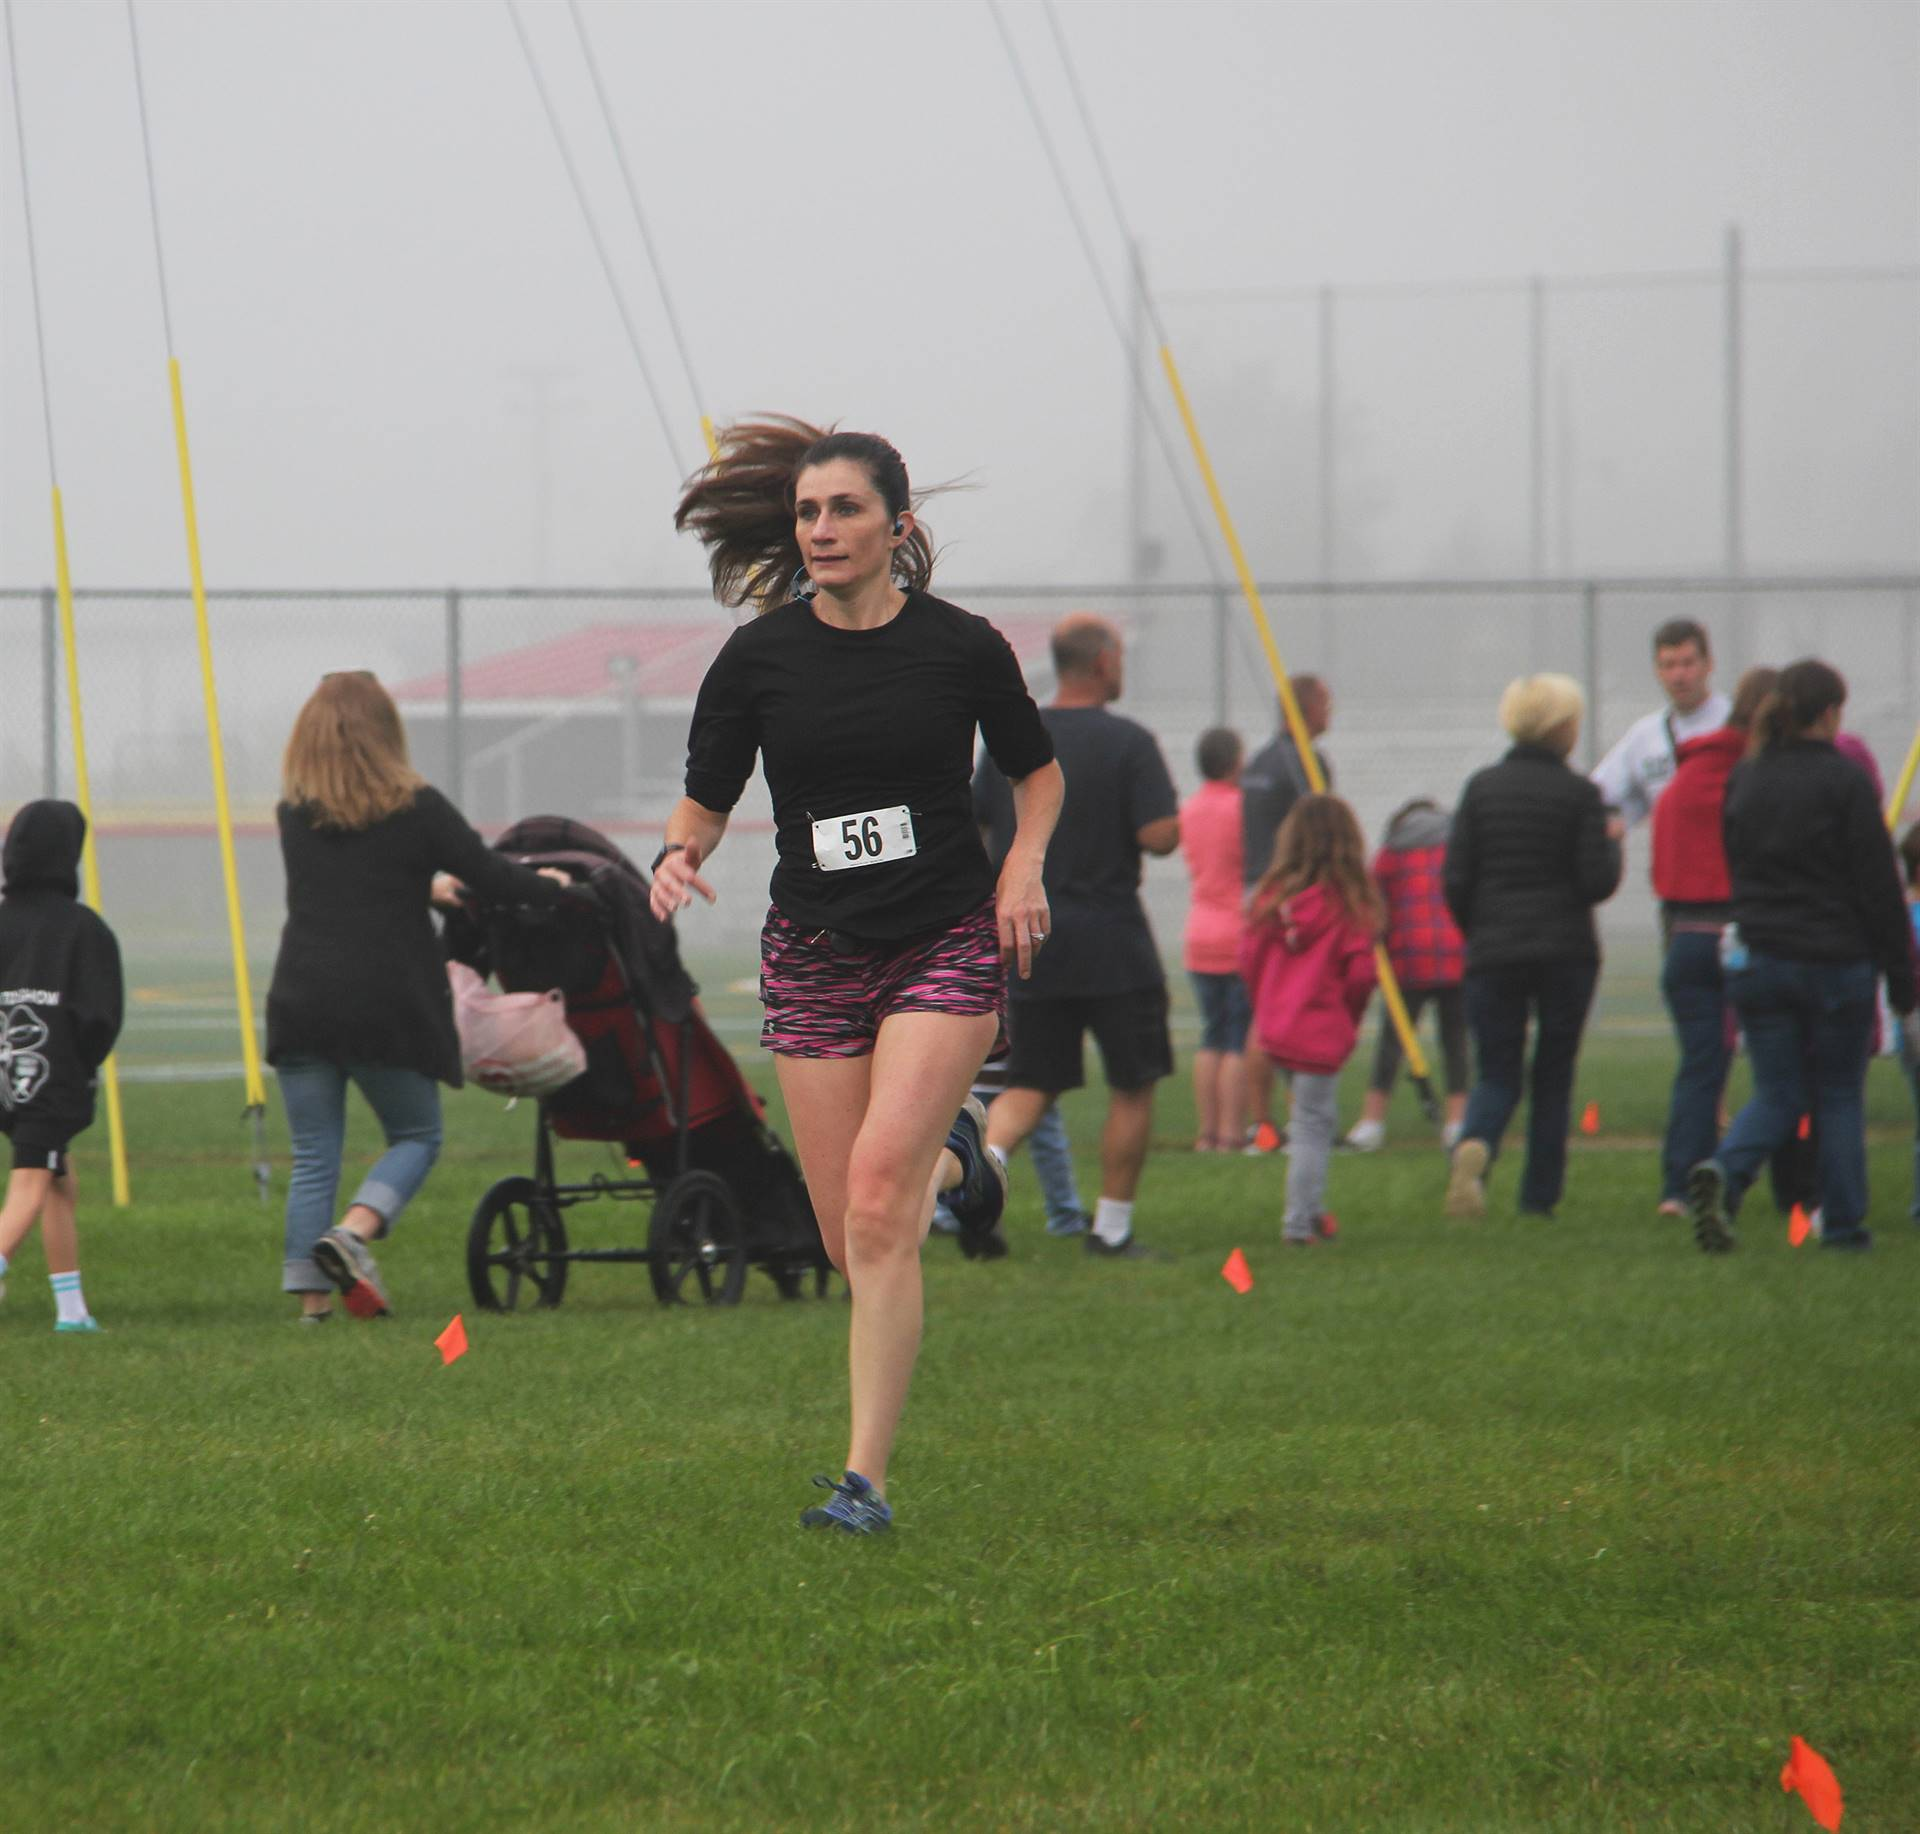 person running at cross country race